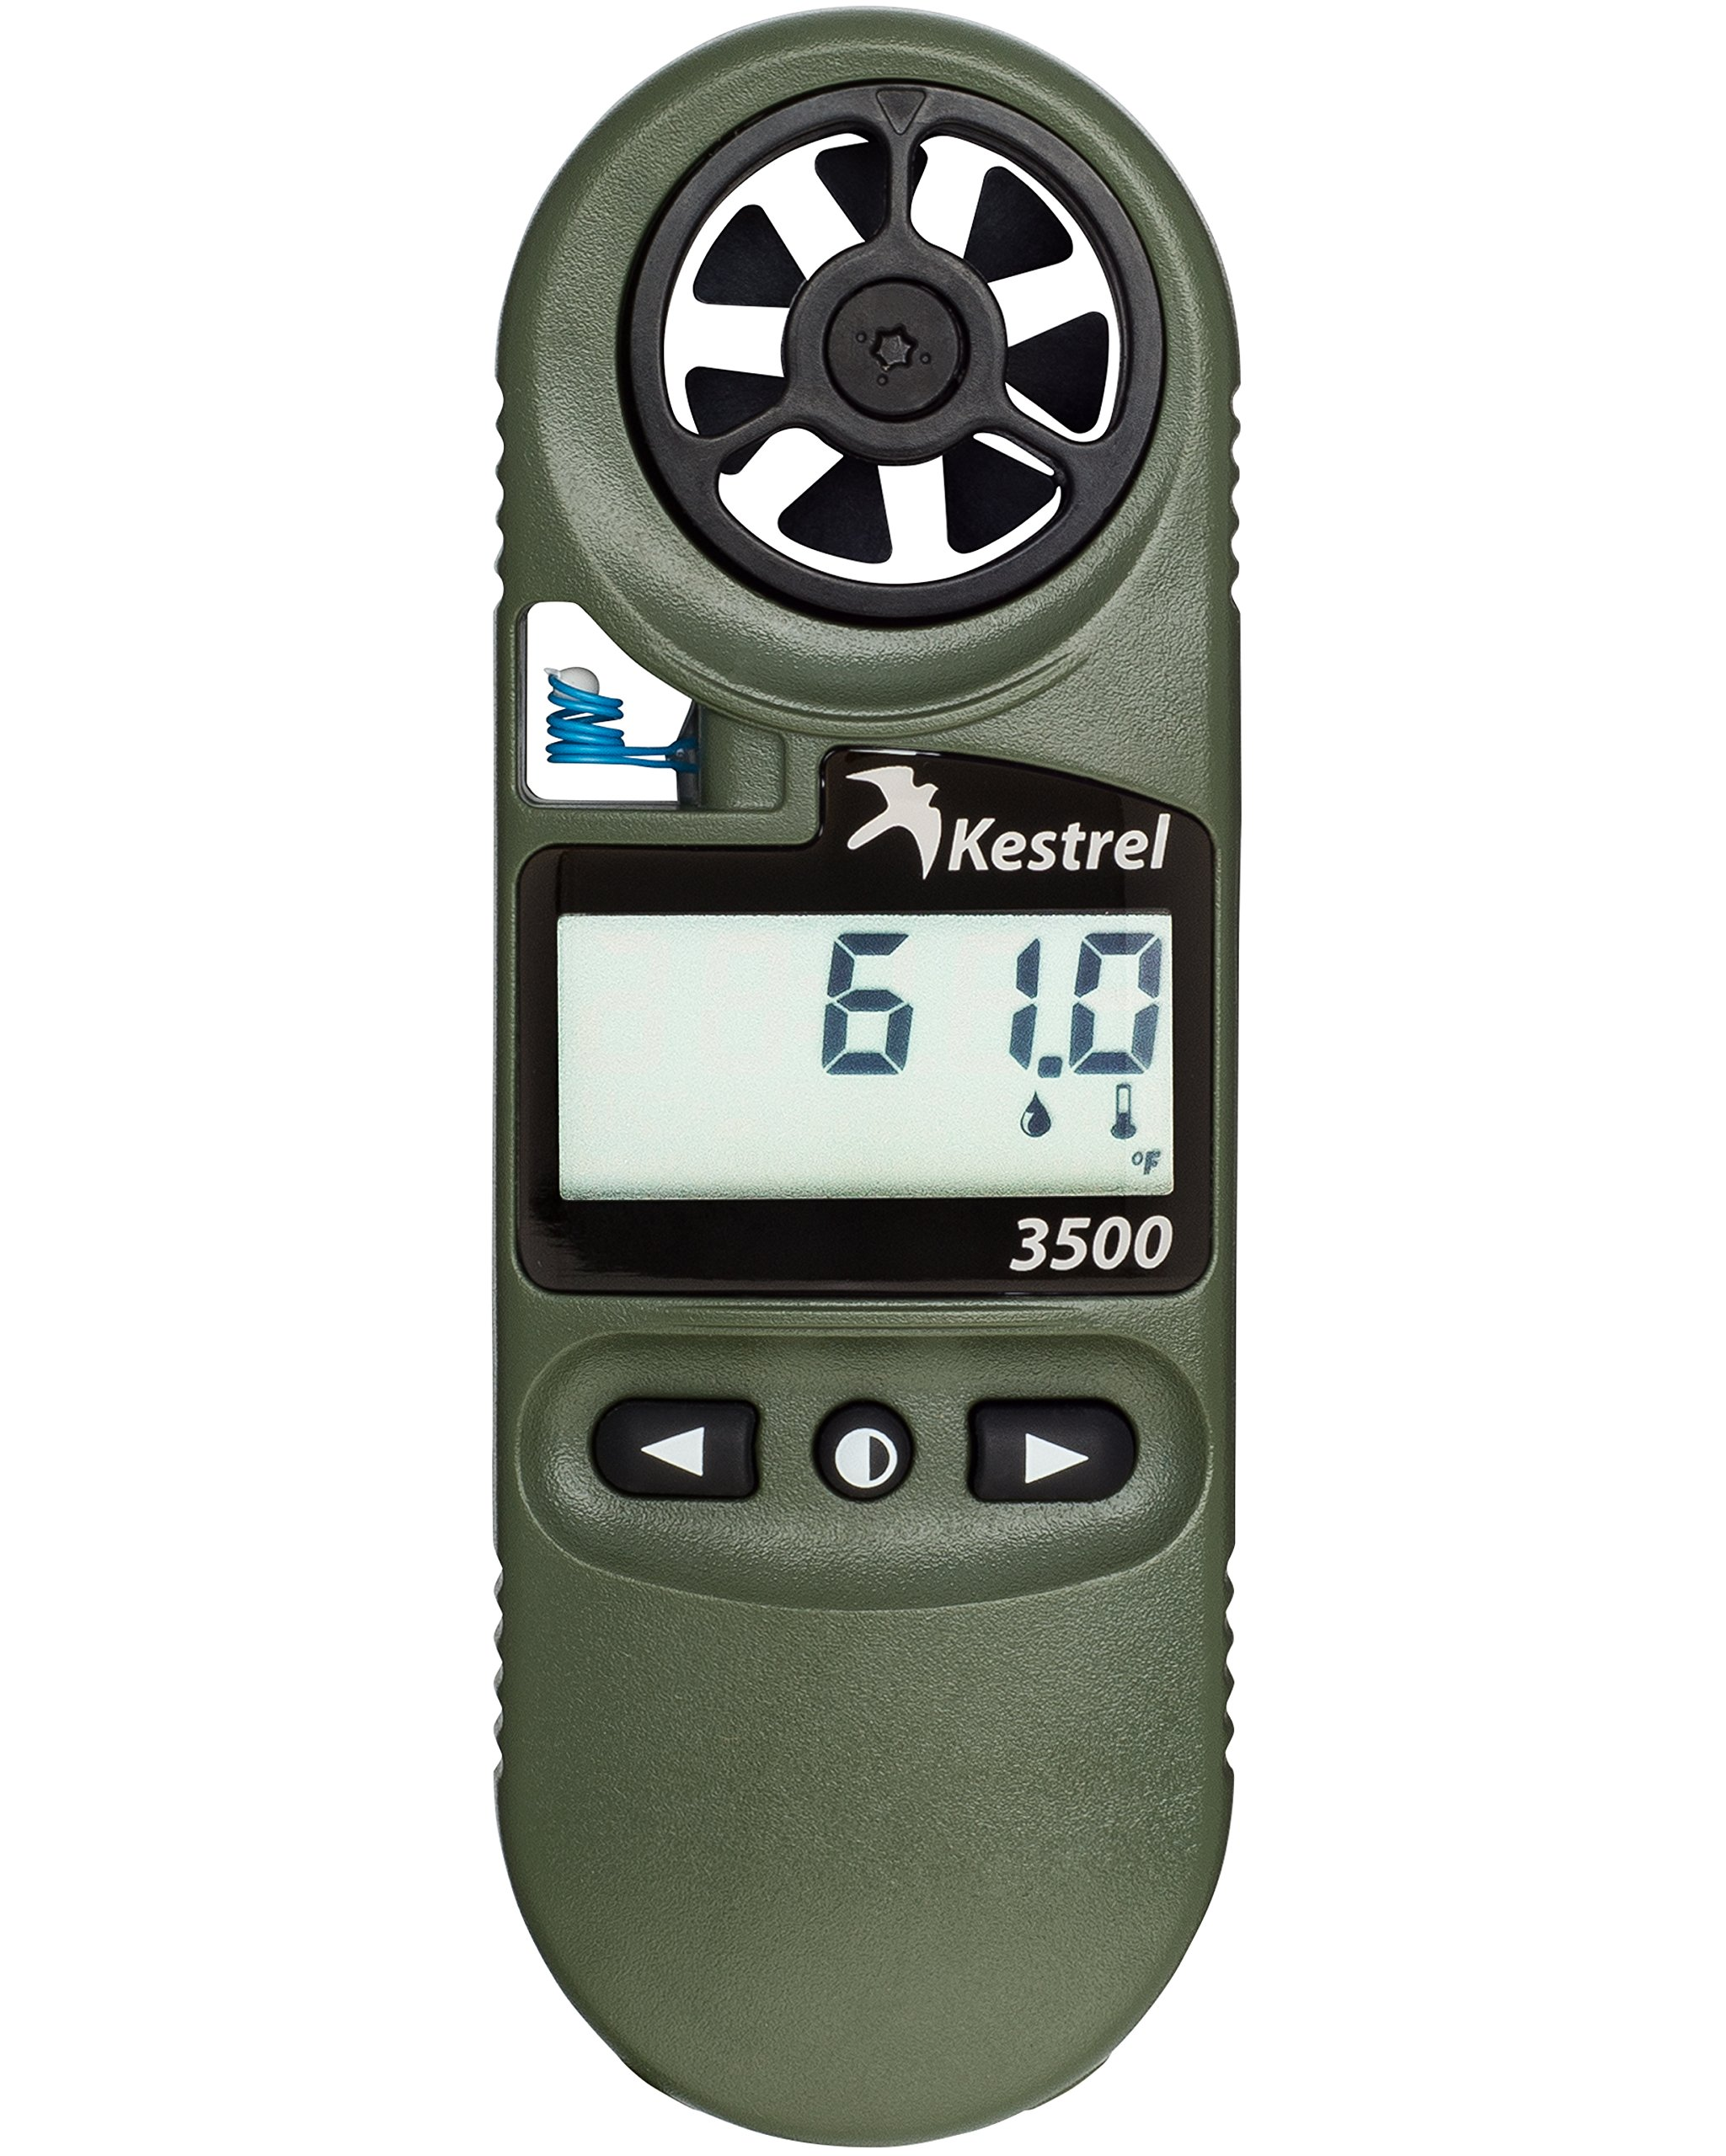 Kestrel 3500 Pocket Weather Meter/Digital Psychrometer Altimeter Anemometer with NV Backlight